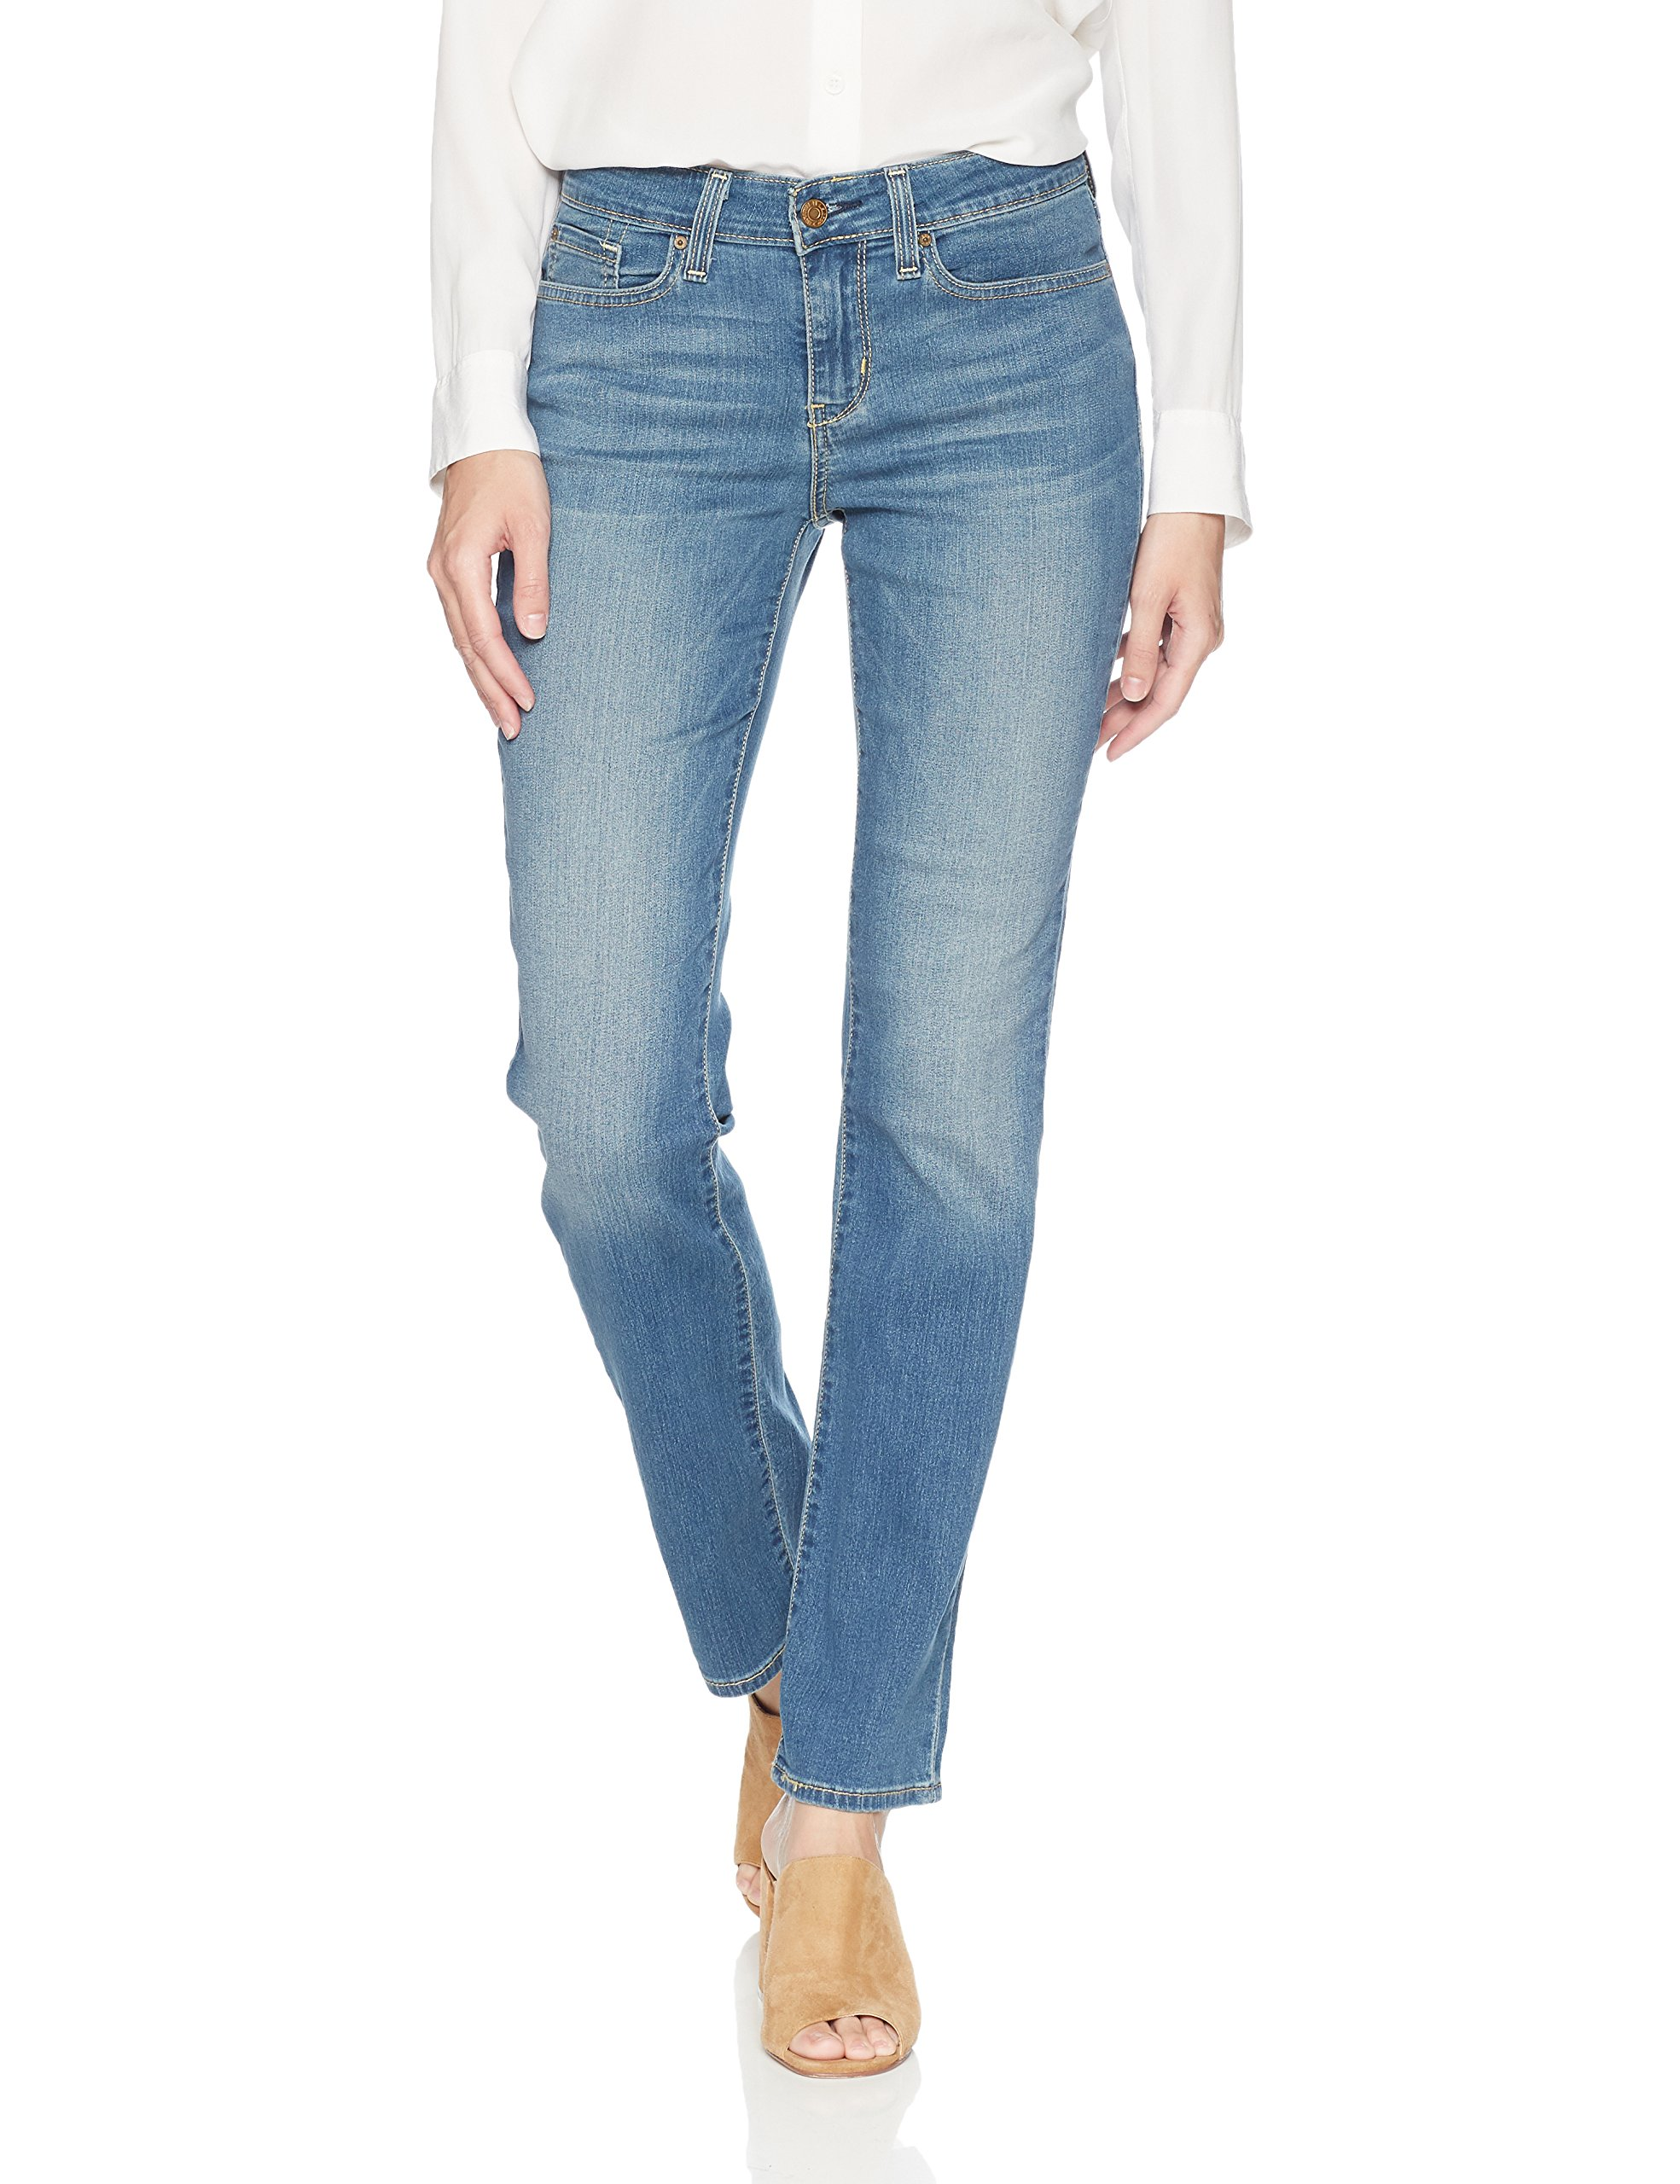 Signature by Levi Strauss & Co. Gold Label Women's Modern Straight Jeans, Rhapsody, 12 Medium by Signature by Levi Strauss & Co. Gold Label (Image #1)